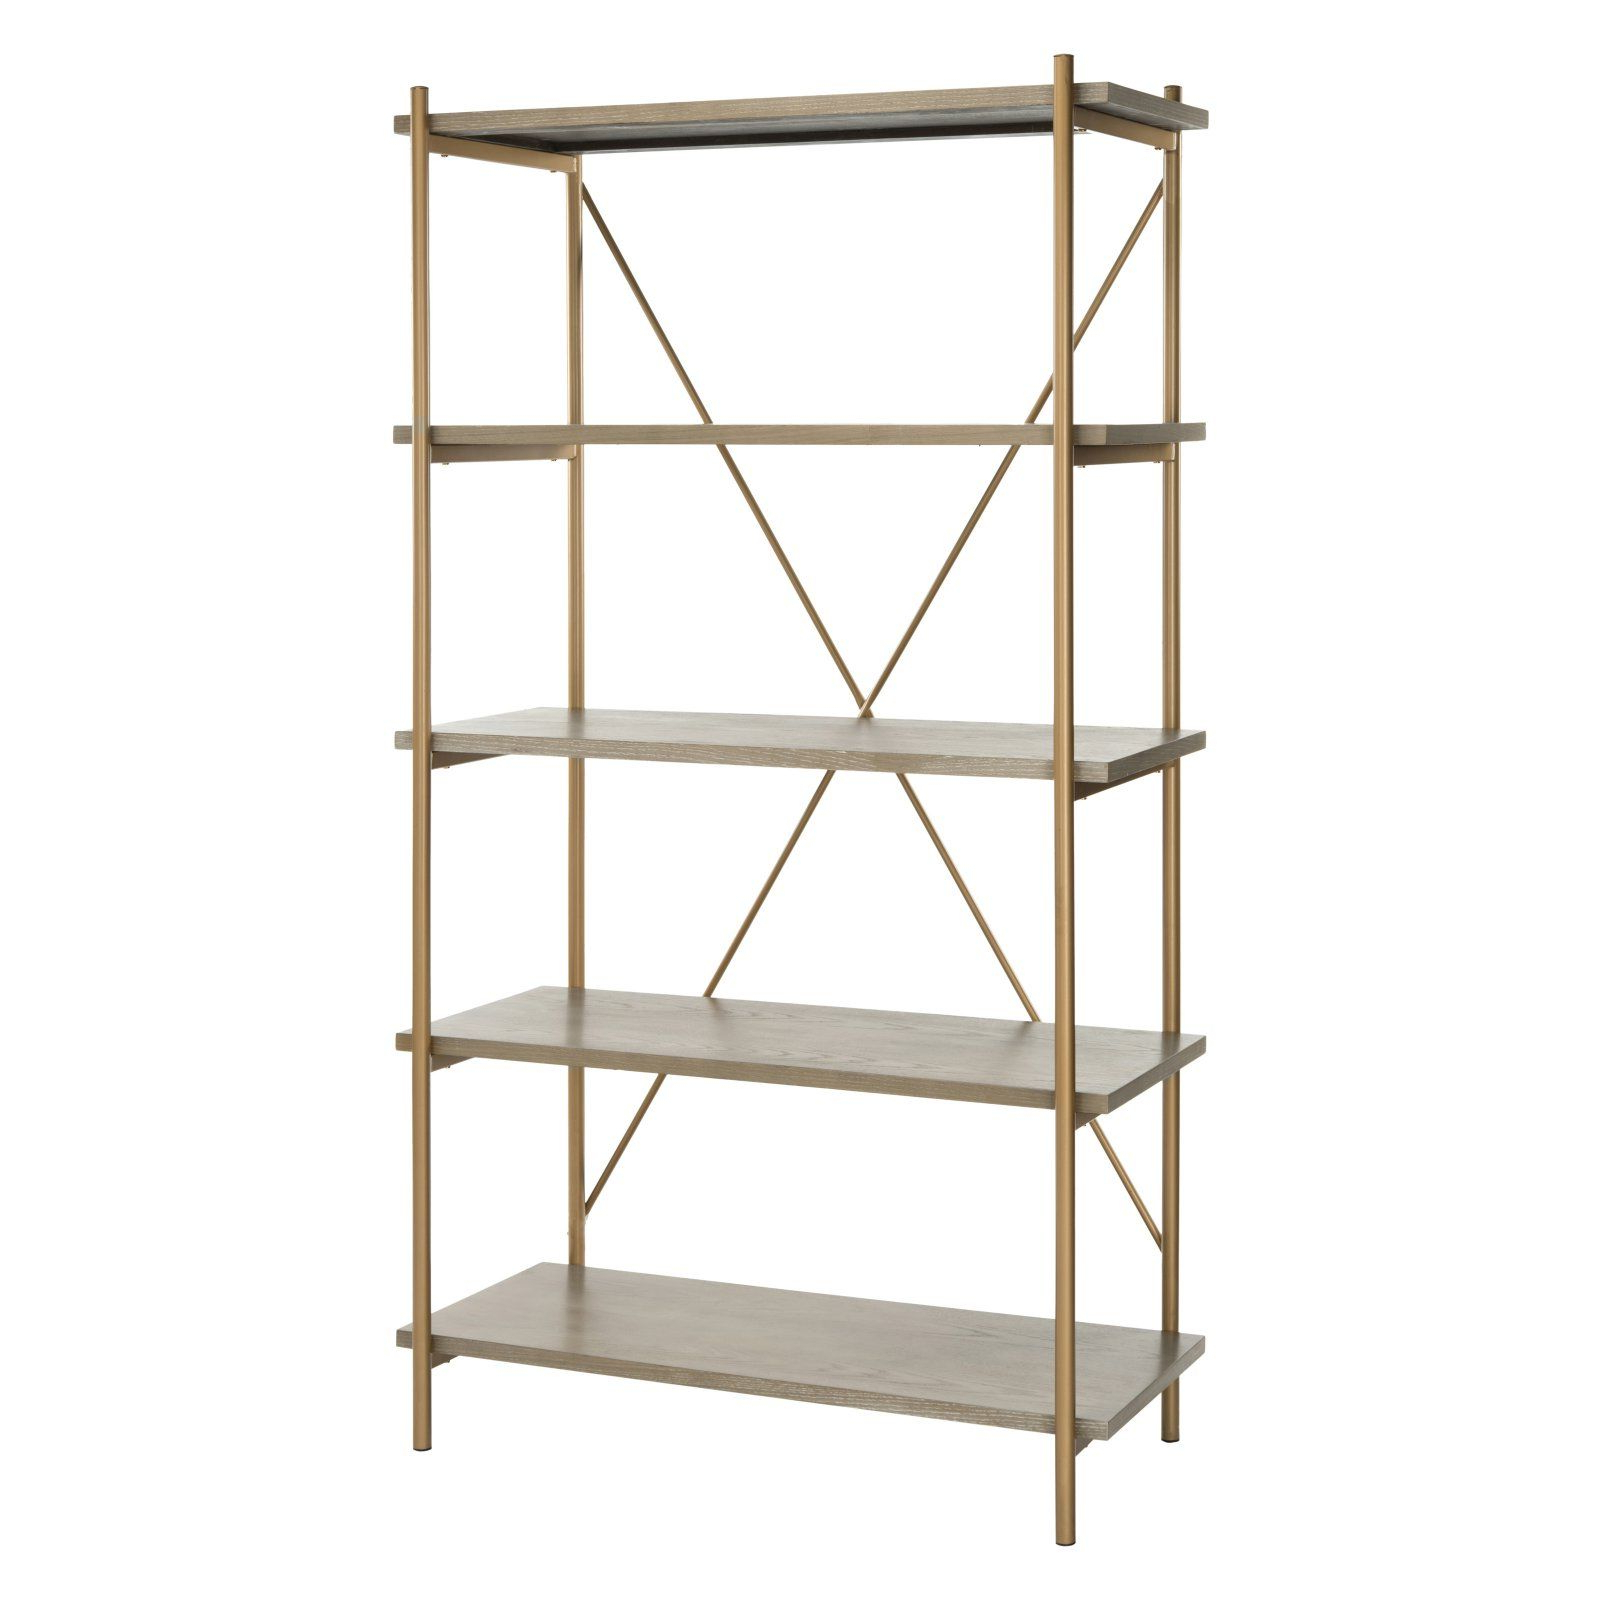 Safavieh Rigby 5 Tier Etagere In (View 19 of 20)